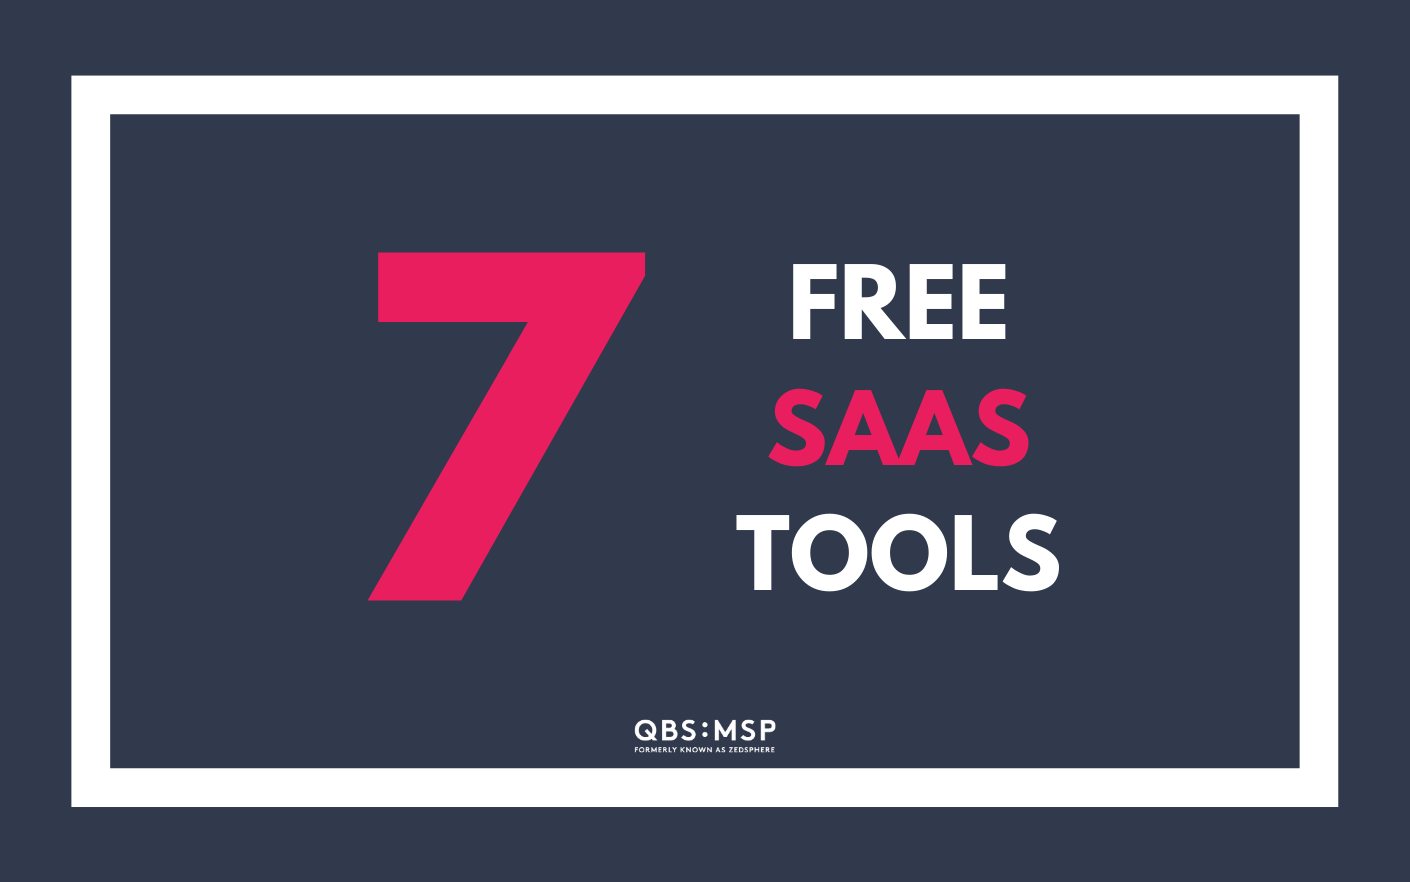 7 free SaaS tools for you and your clients